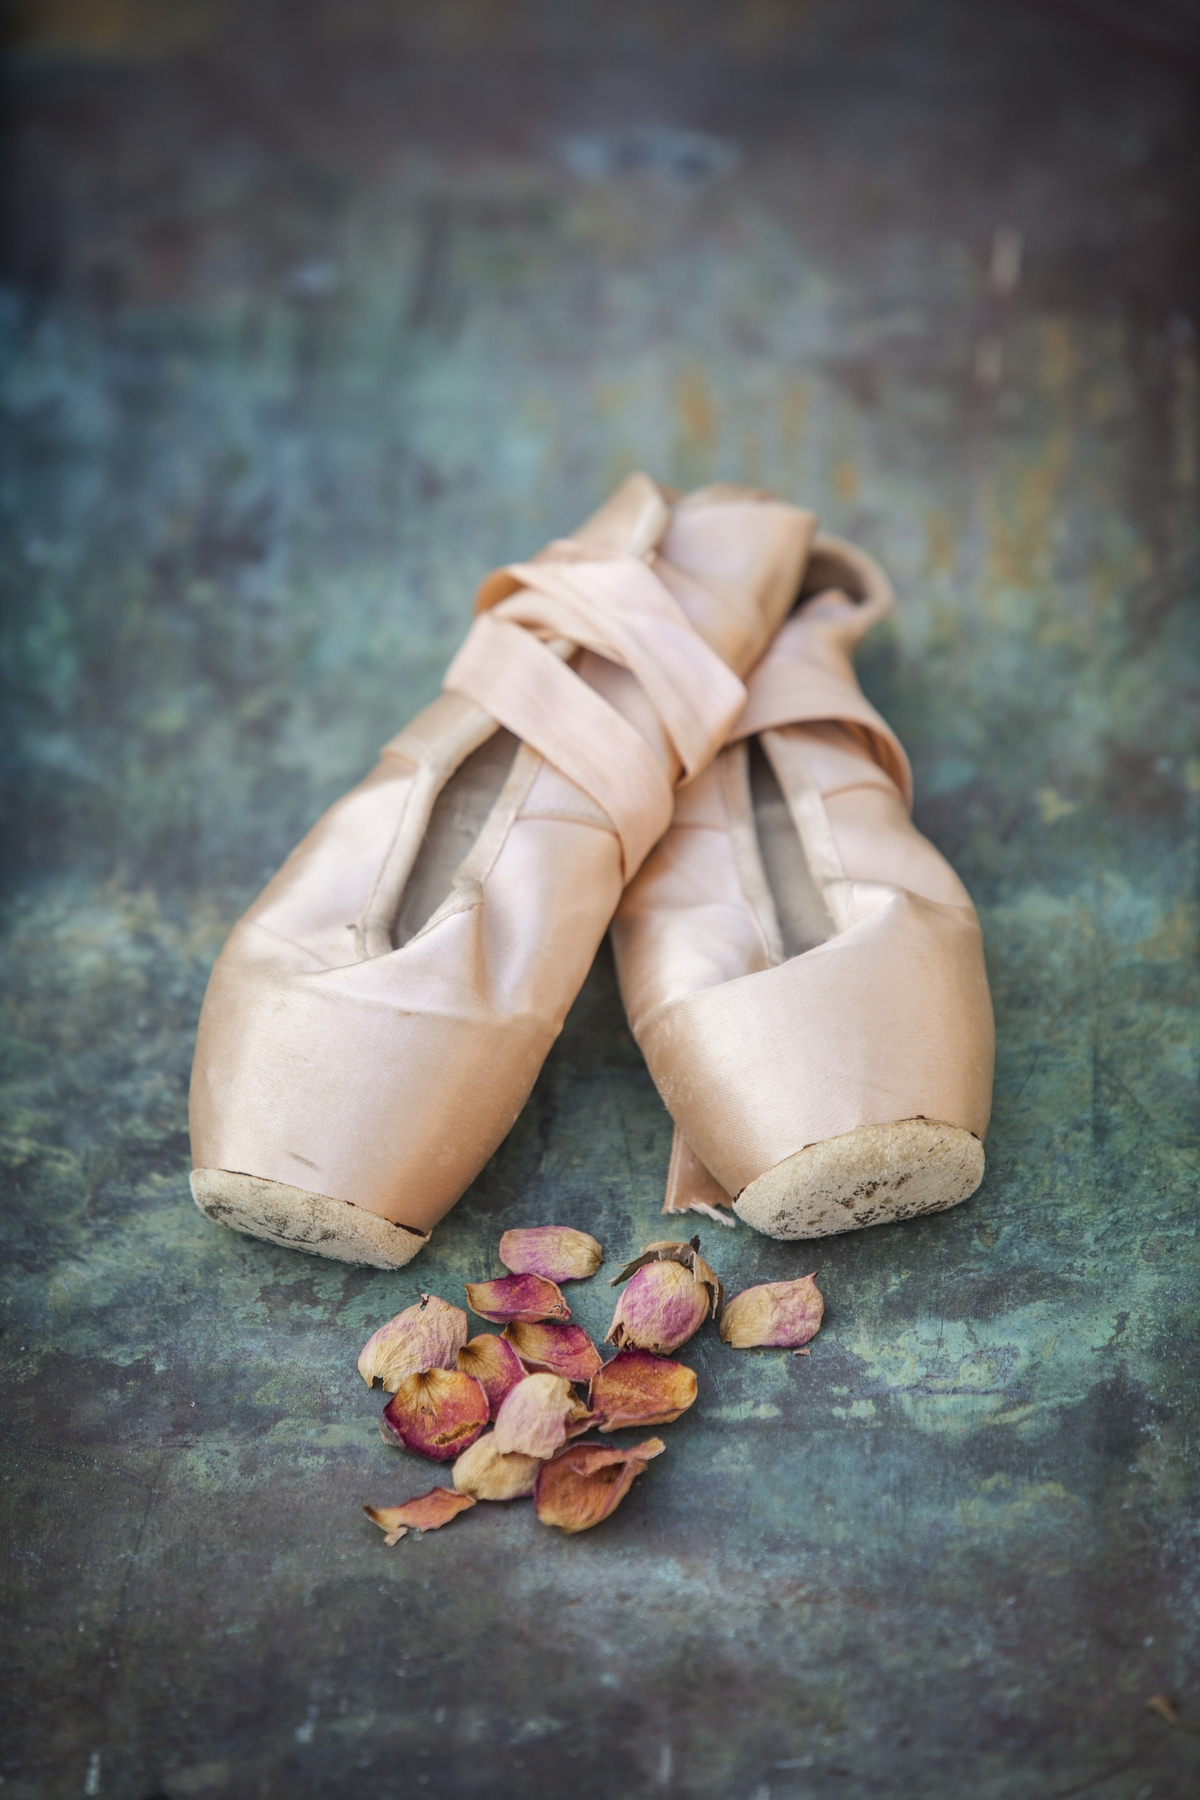 Buy Pointe Shoes wallpaper - Free US shipping at Happywall.com